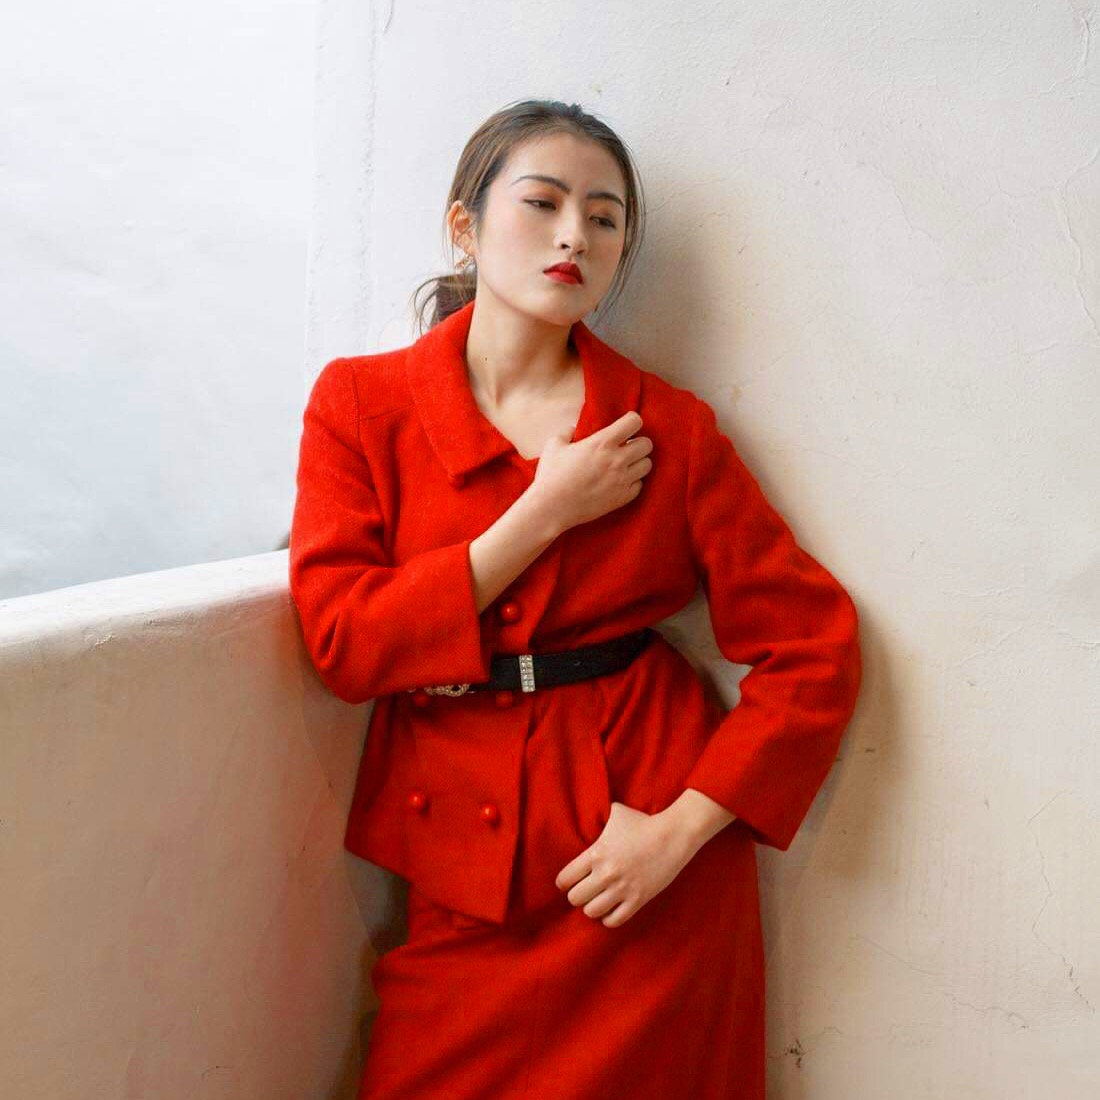 Copy of red outfit